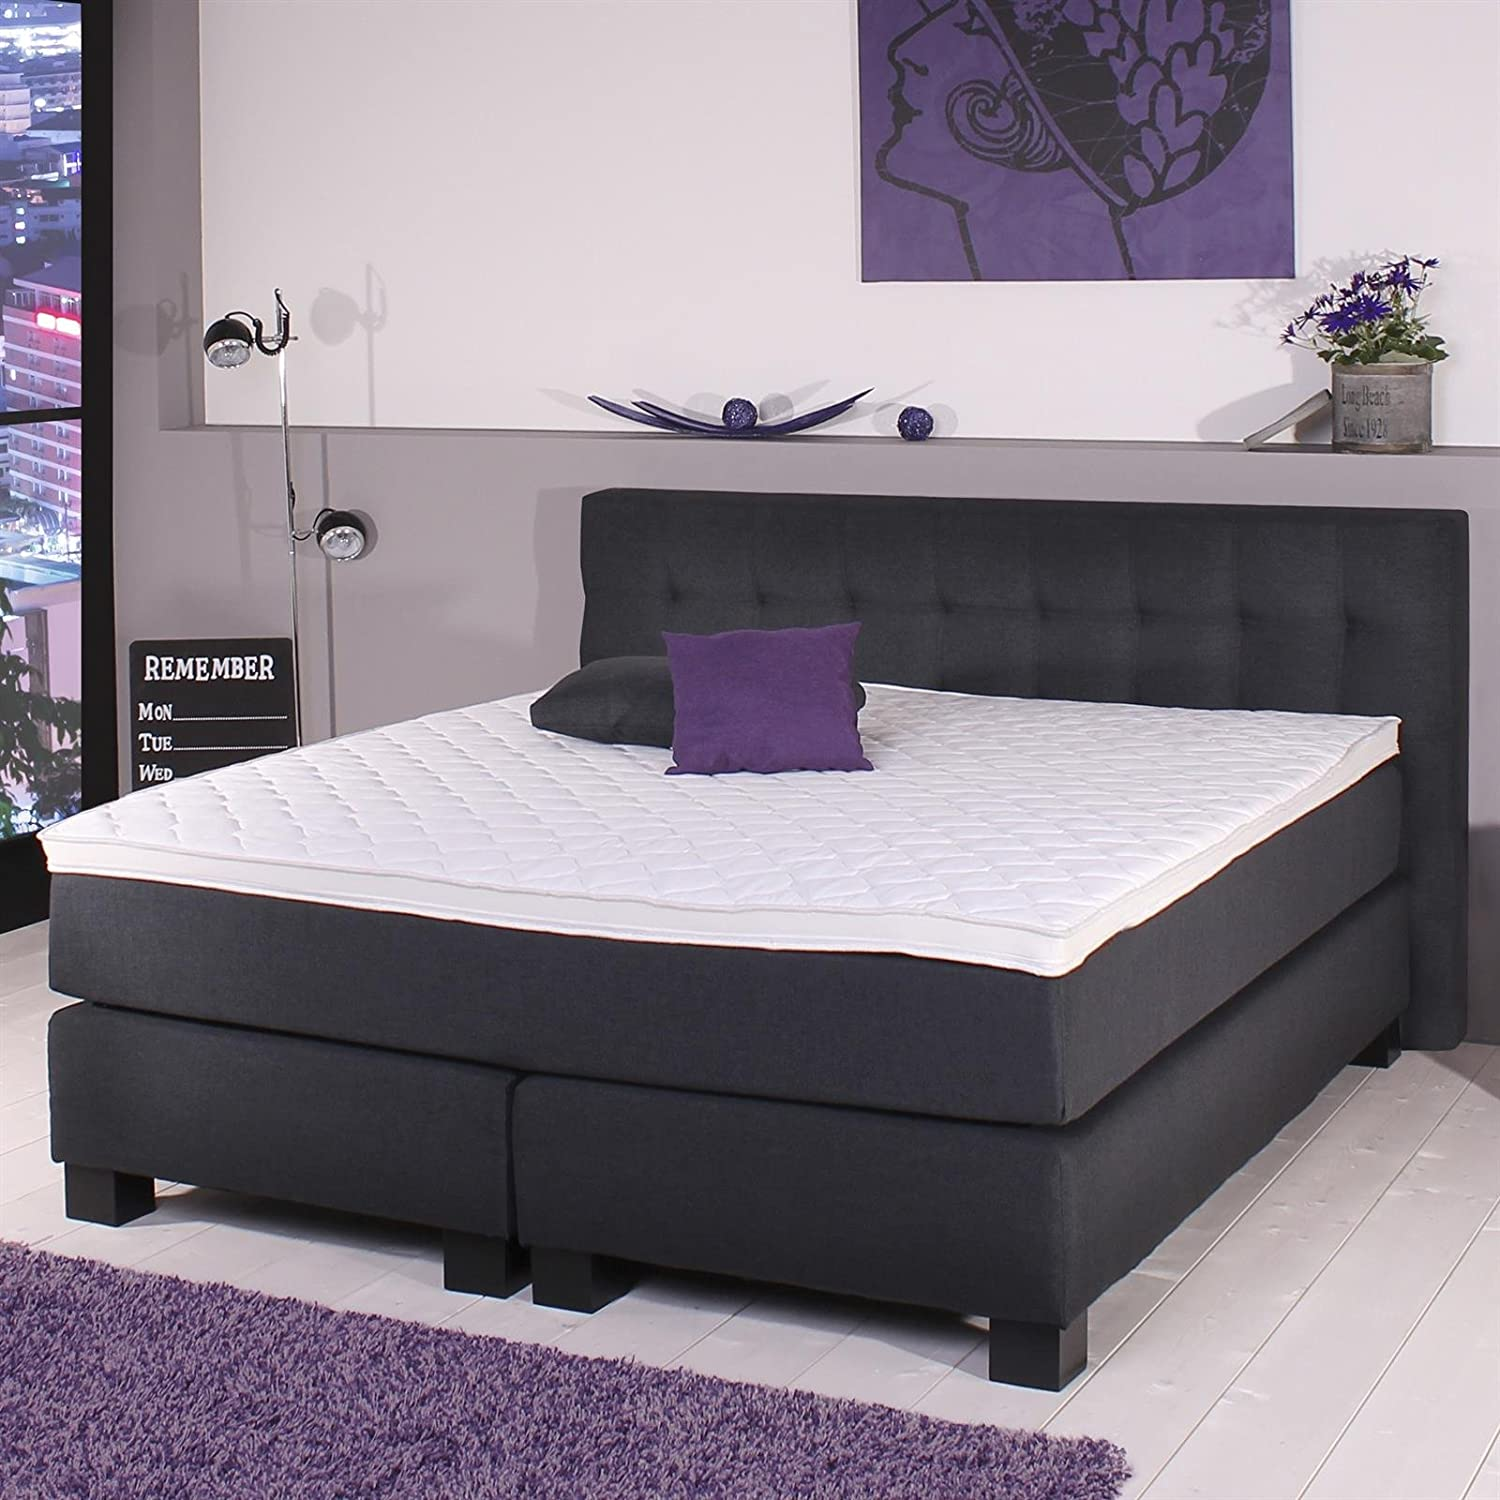 boxspringbett doppelbett hotelbett 180 x 200 cm mit matratze bezug leinen optik schwarz jetzt. Black Bedroom Furniture Sets. Home Design Ideas